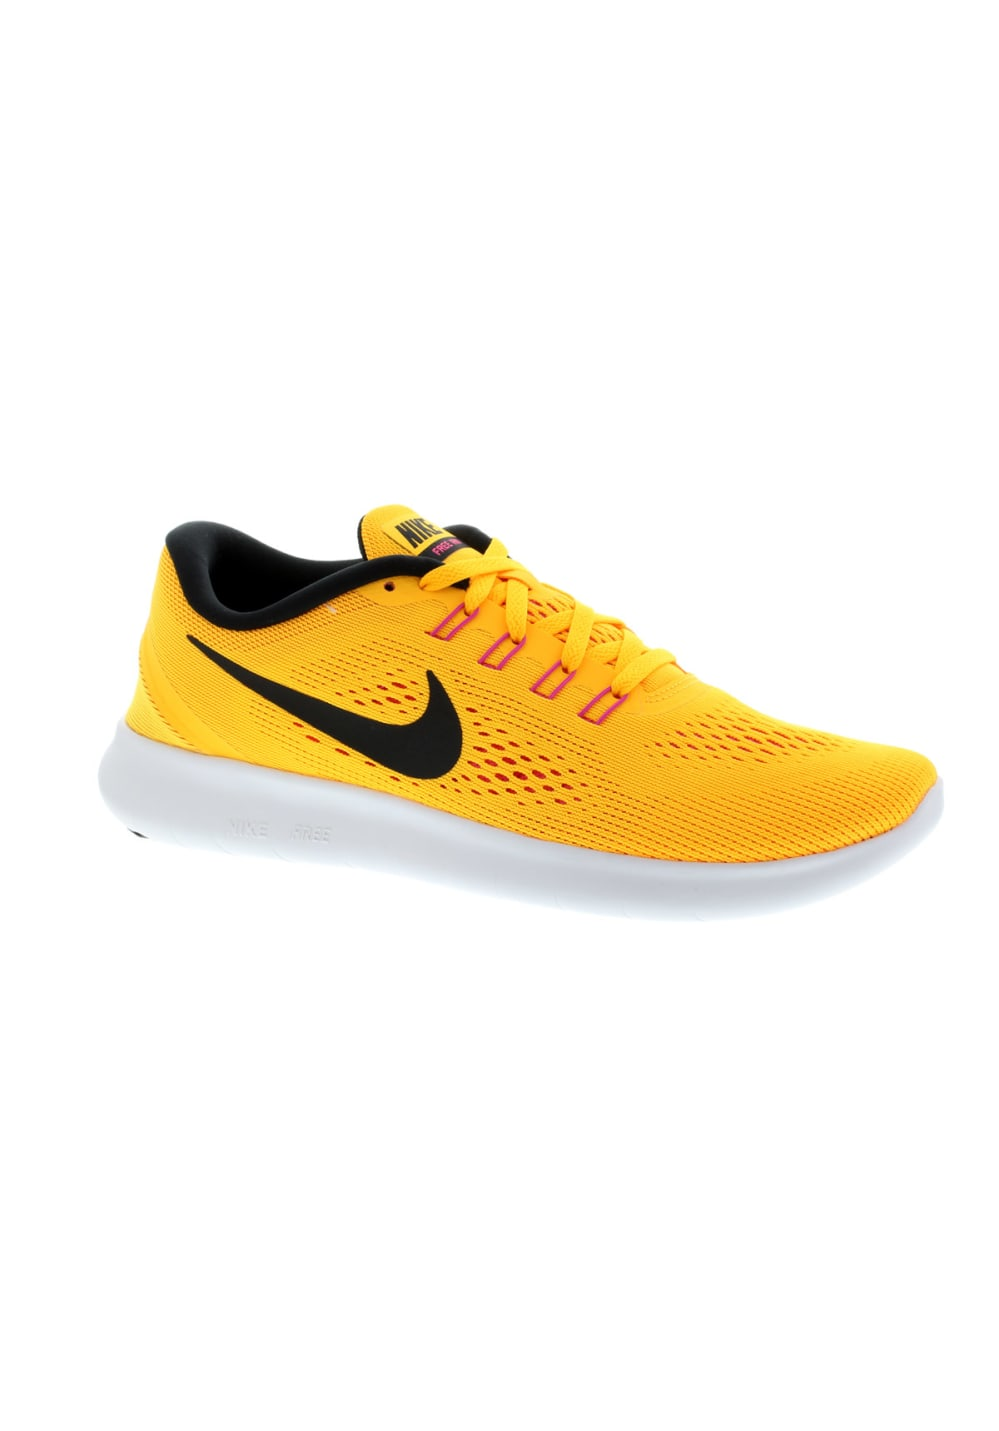 plus récent f3278 99d66 Nike Free RN - Chaussures running pour Femme - Jaune